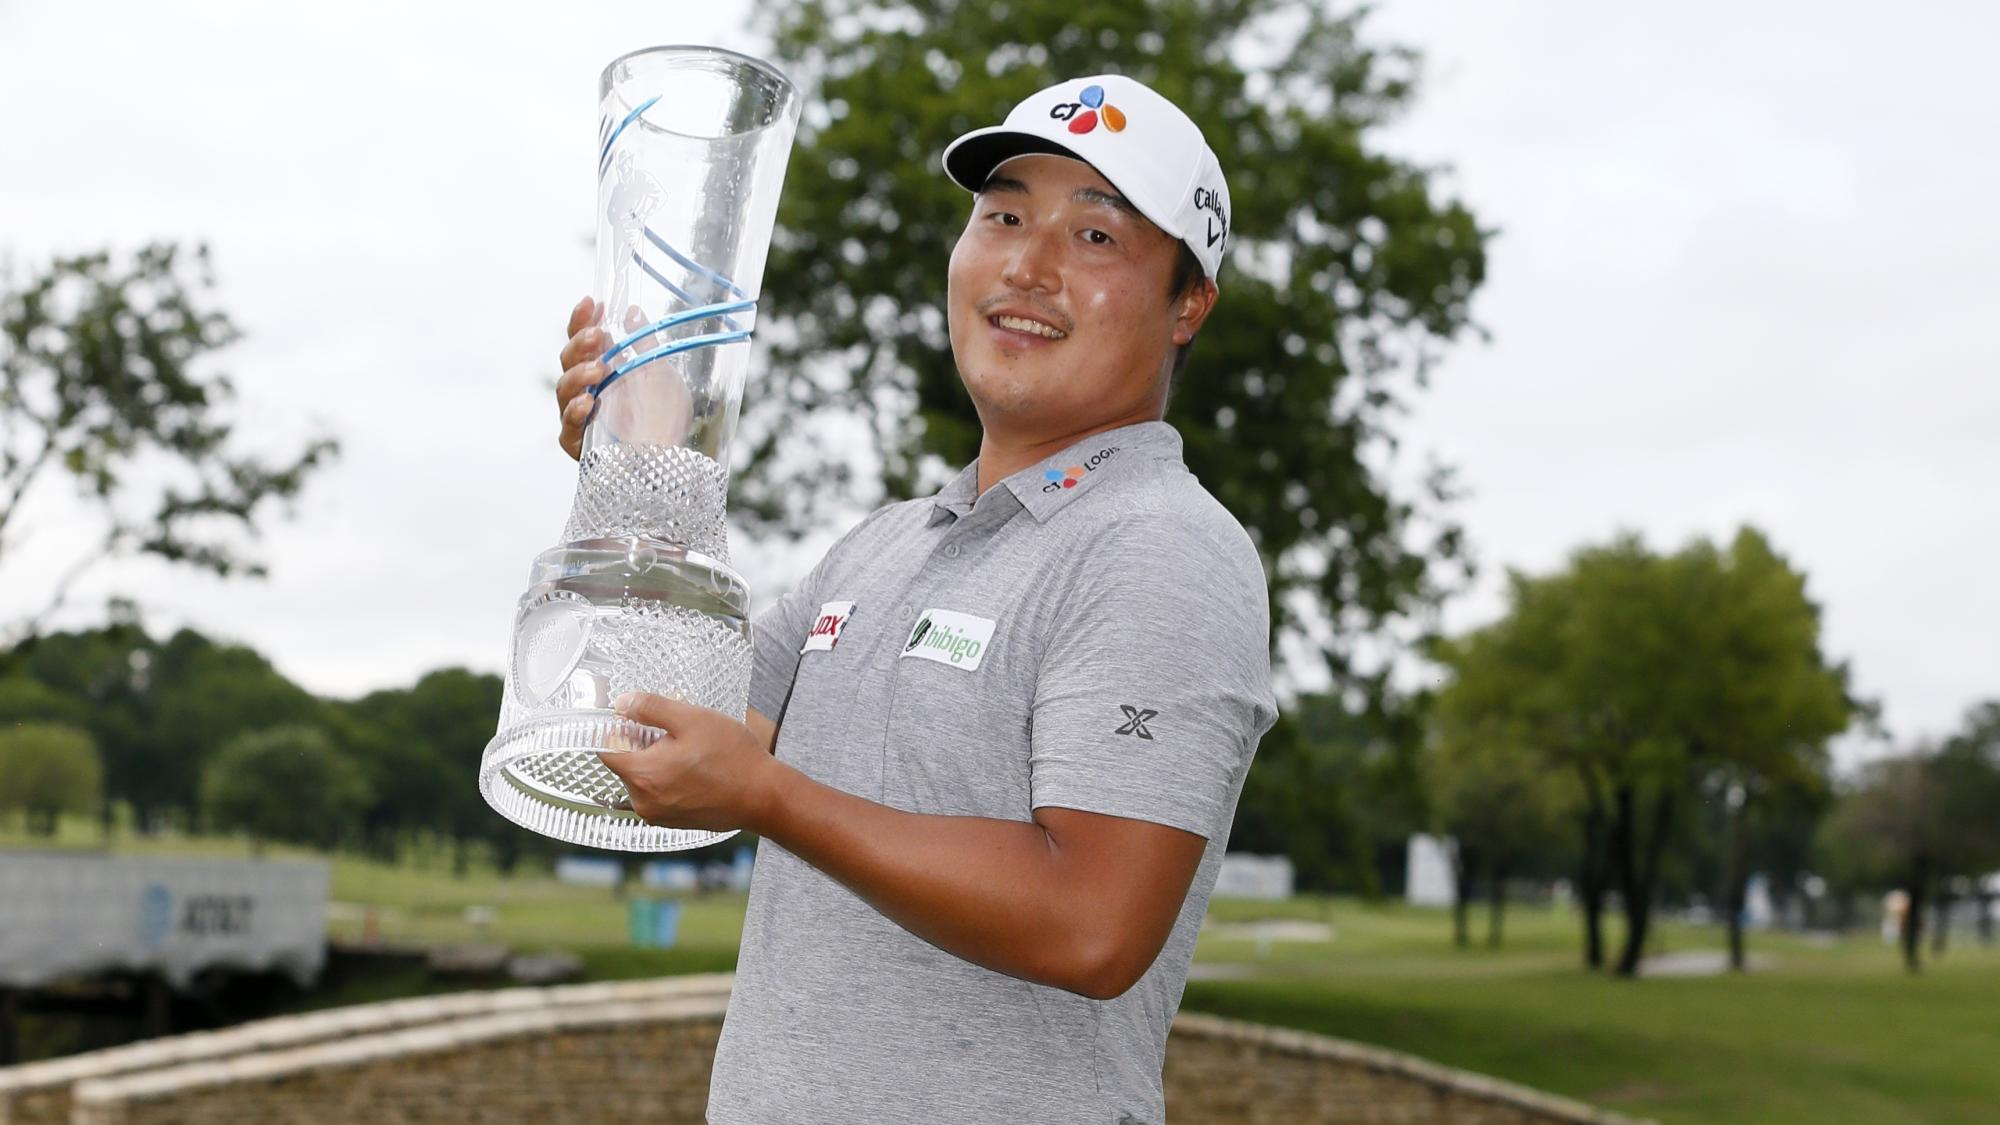 Golf betting: A 150-to-1 long shot won a PGA event and only one bettor had him … for $1